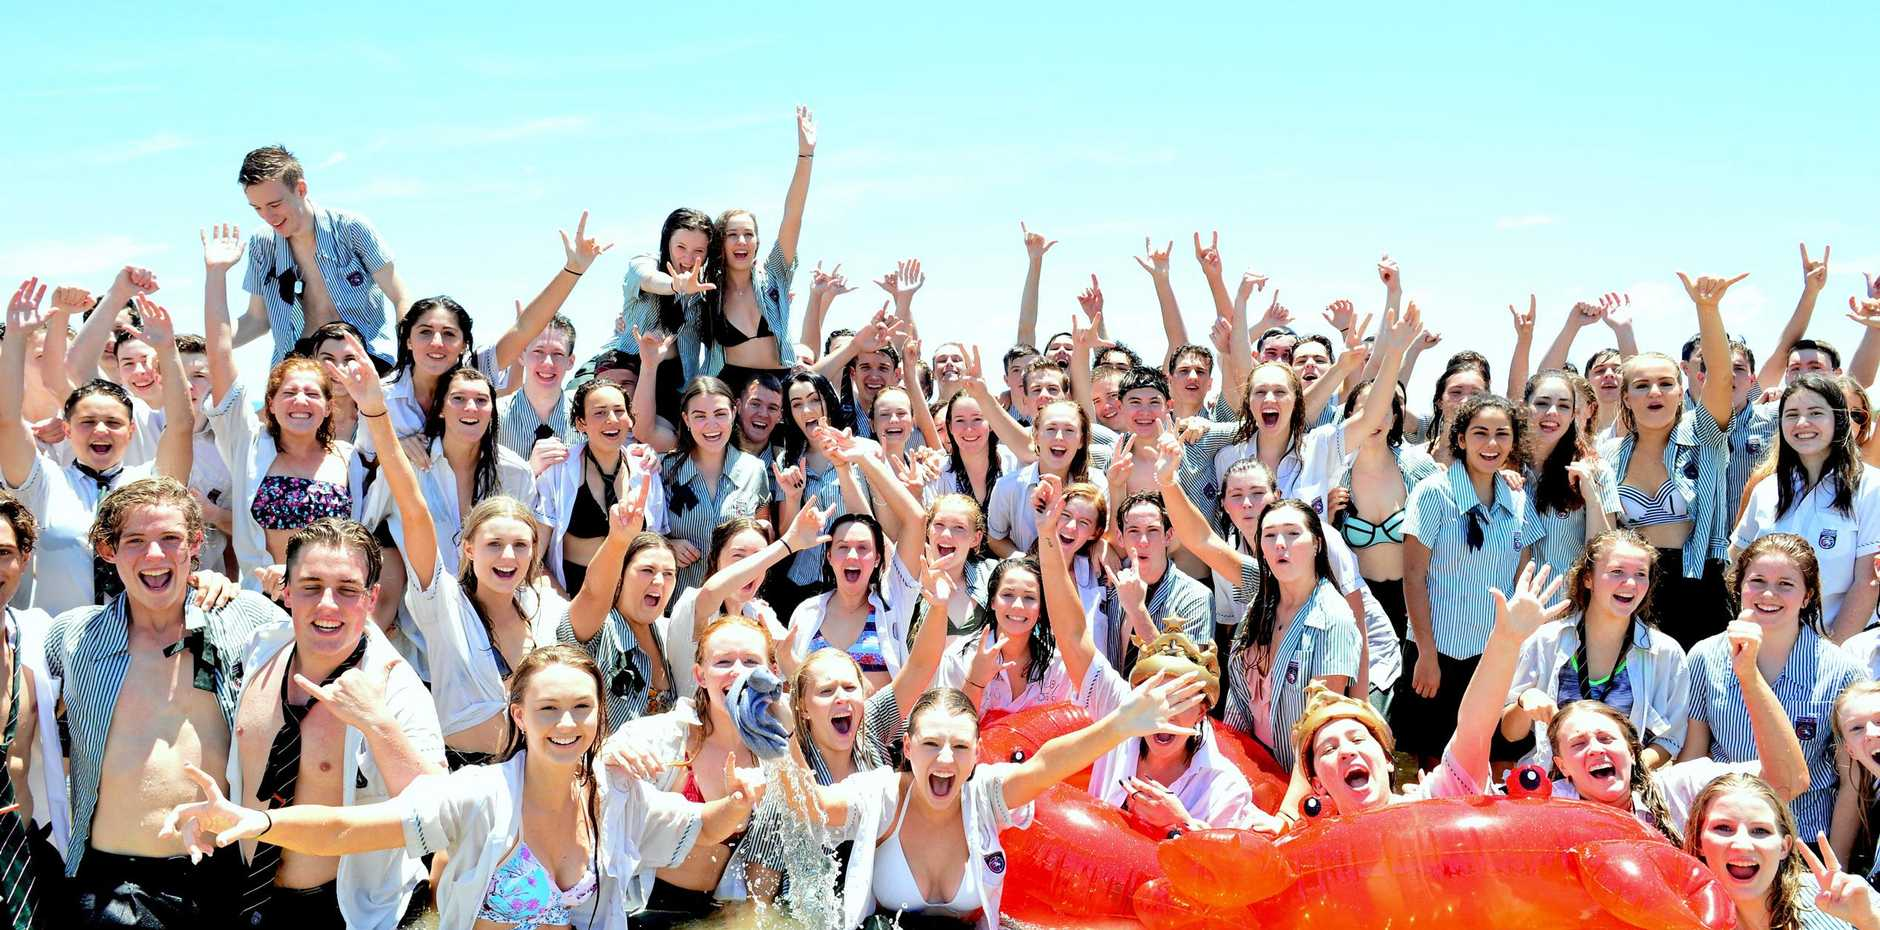 Nambour Christian College's class of 2017 celebrate the final day of year 12.